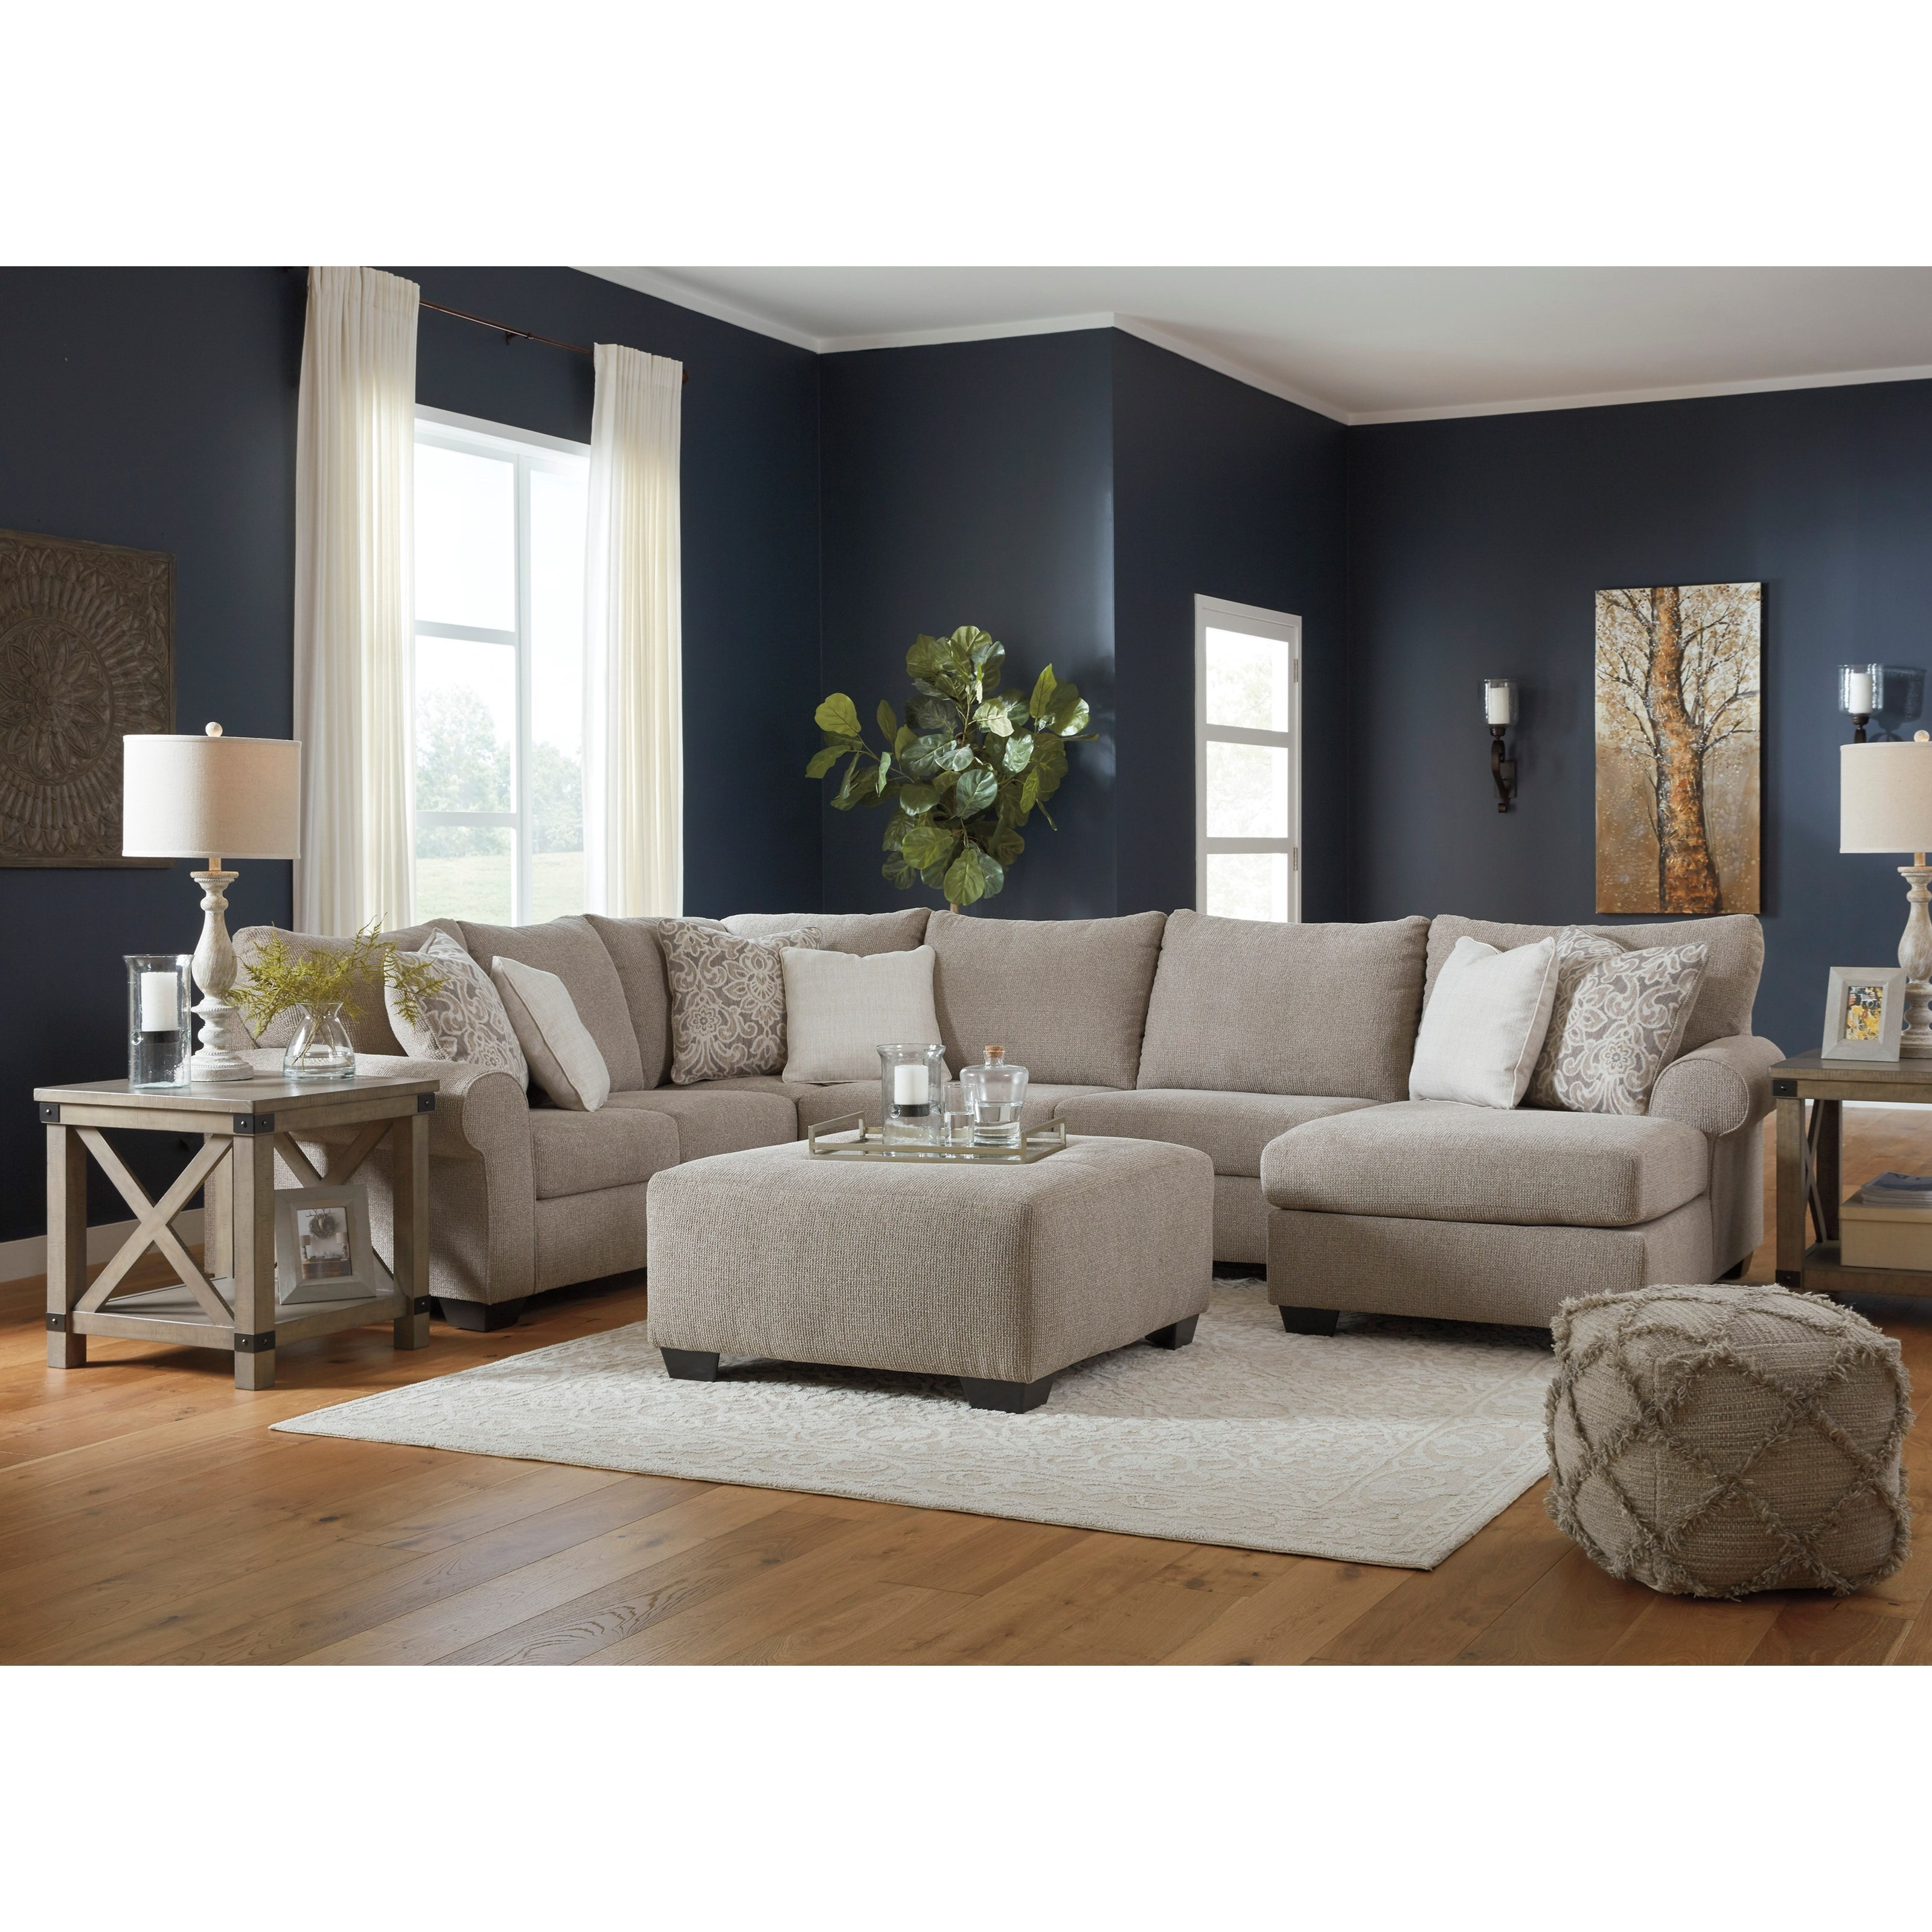 Baranello Stationary Living Room Group by Benchcraft at Northeast Factory Direct